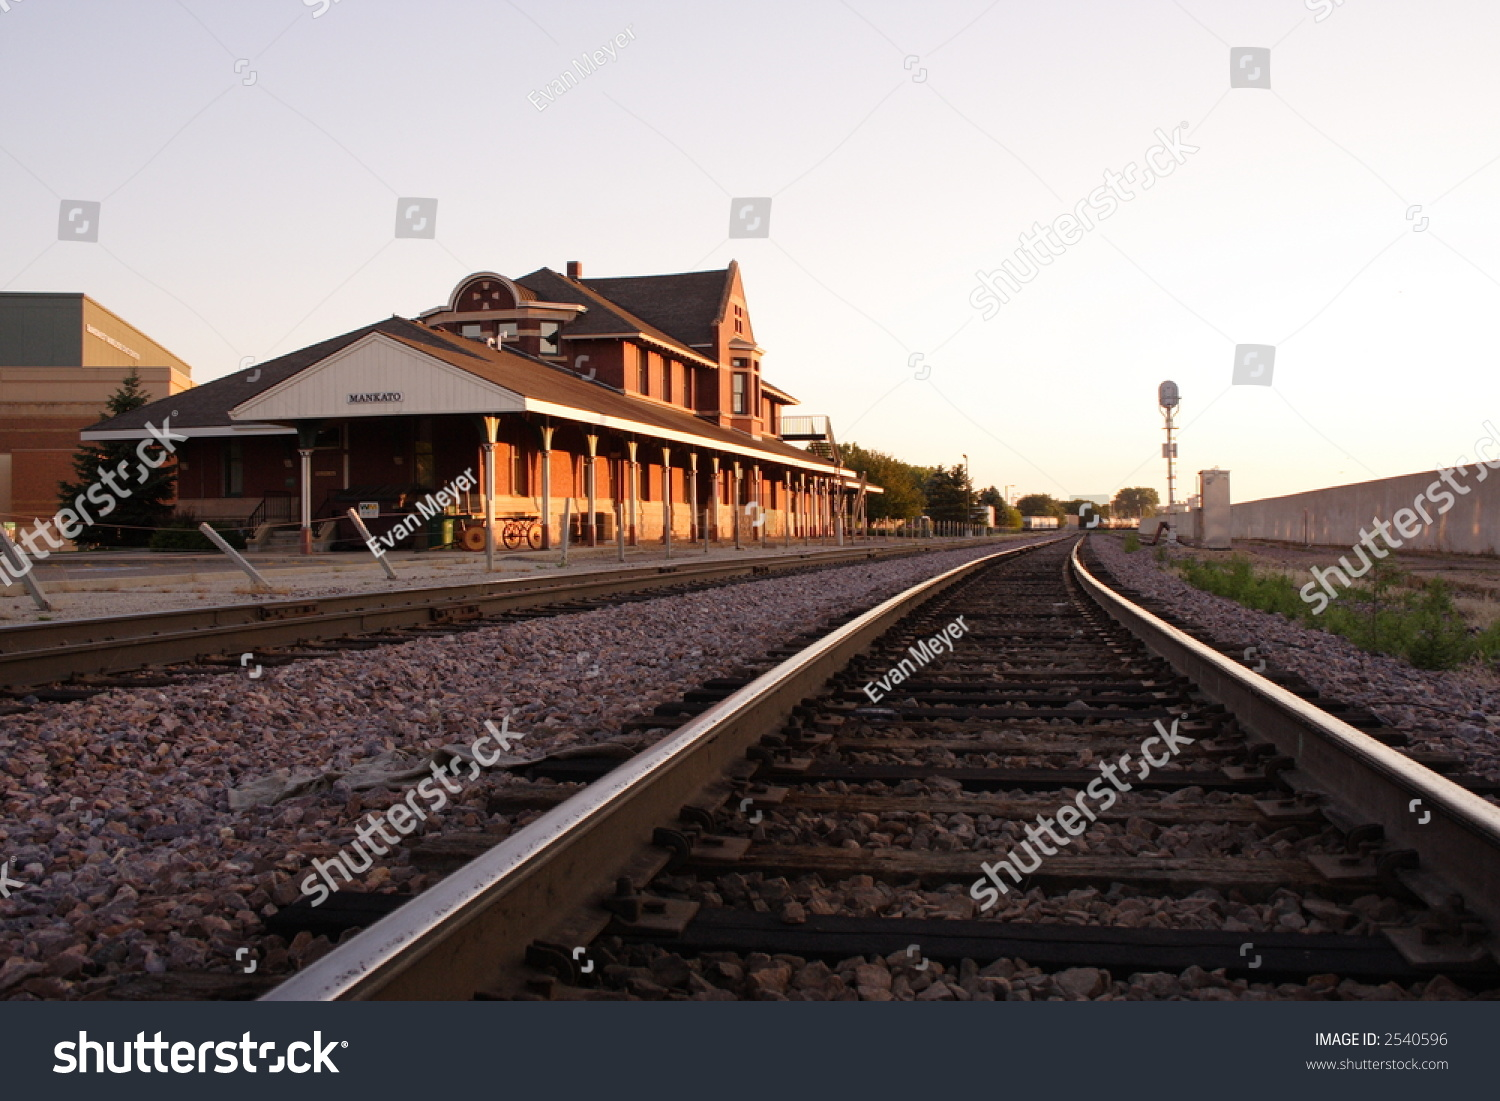 mankato train depot stock photo 2540596 shutterstock. Black Bedroom Furniture Sets. Home Design Ideas